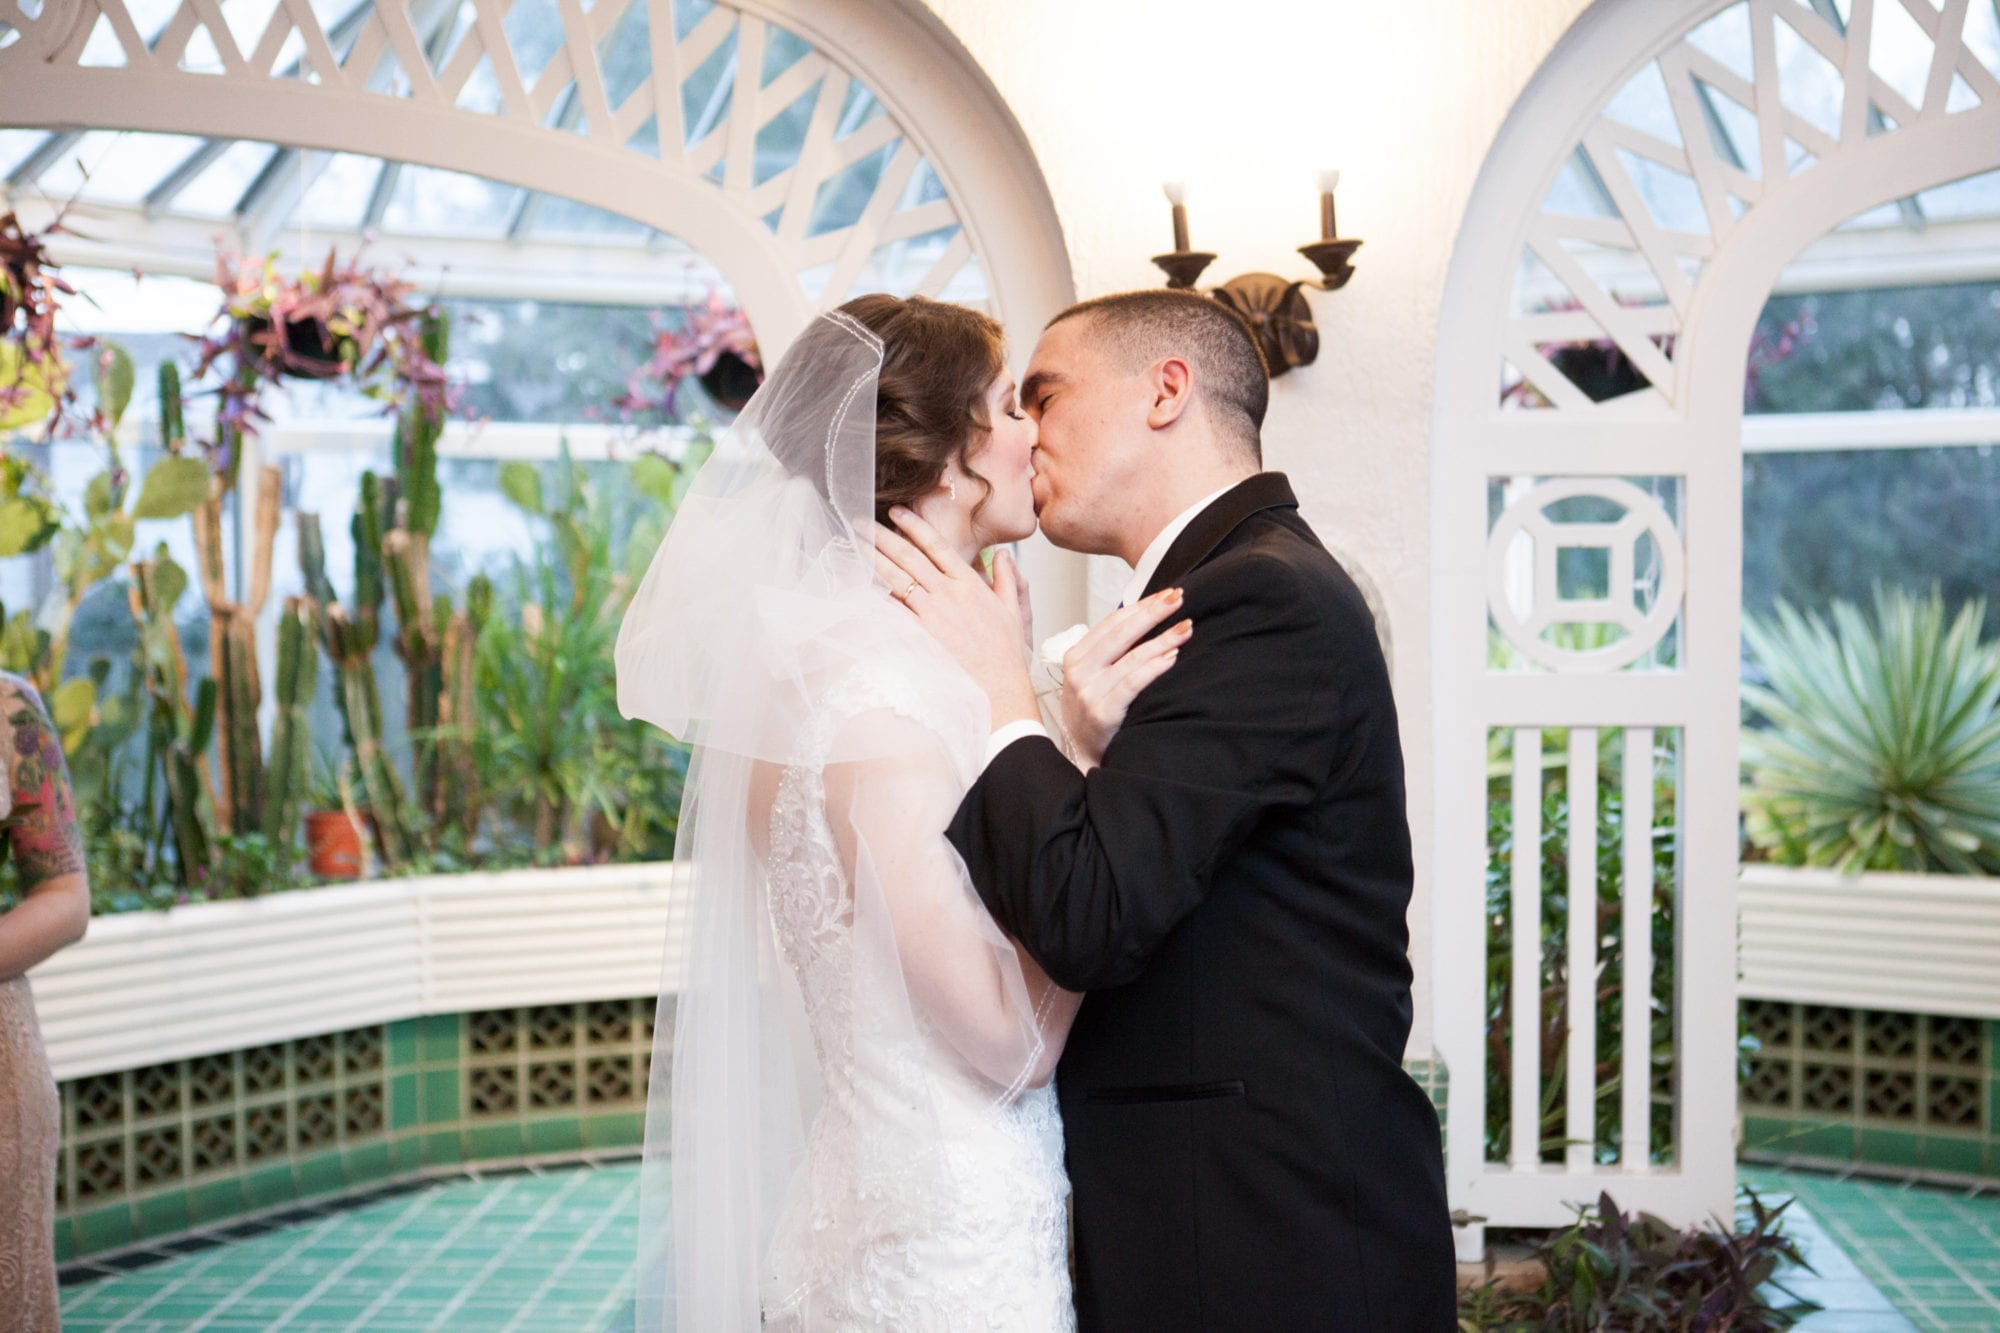 Ceremny Kiss Heintzman House Wedding Zsuzsi Pal Photography